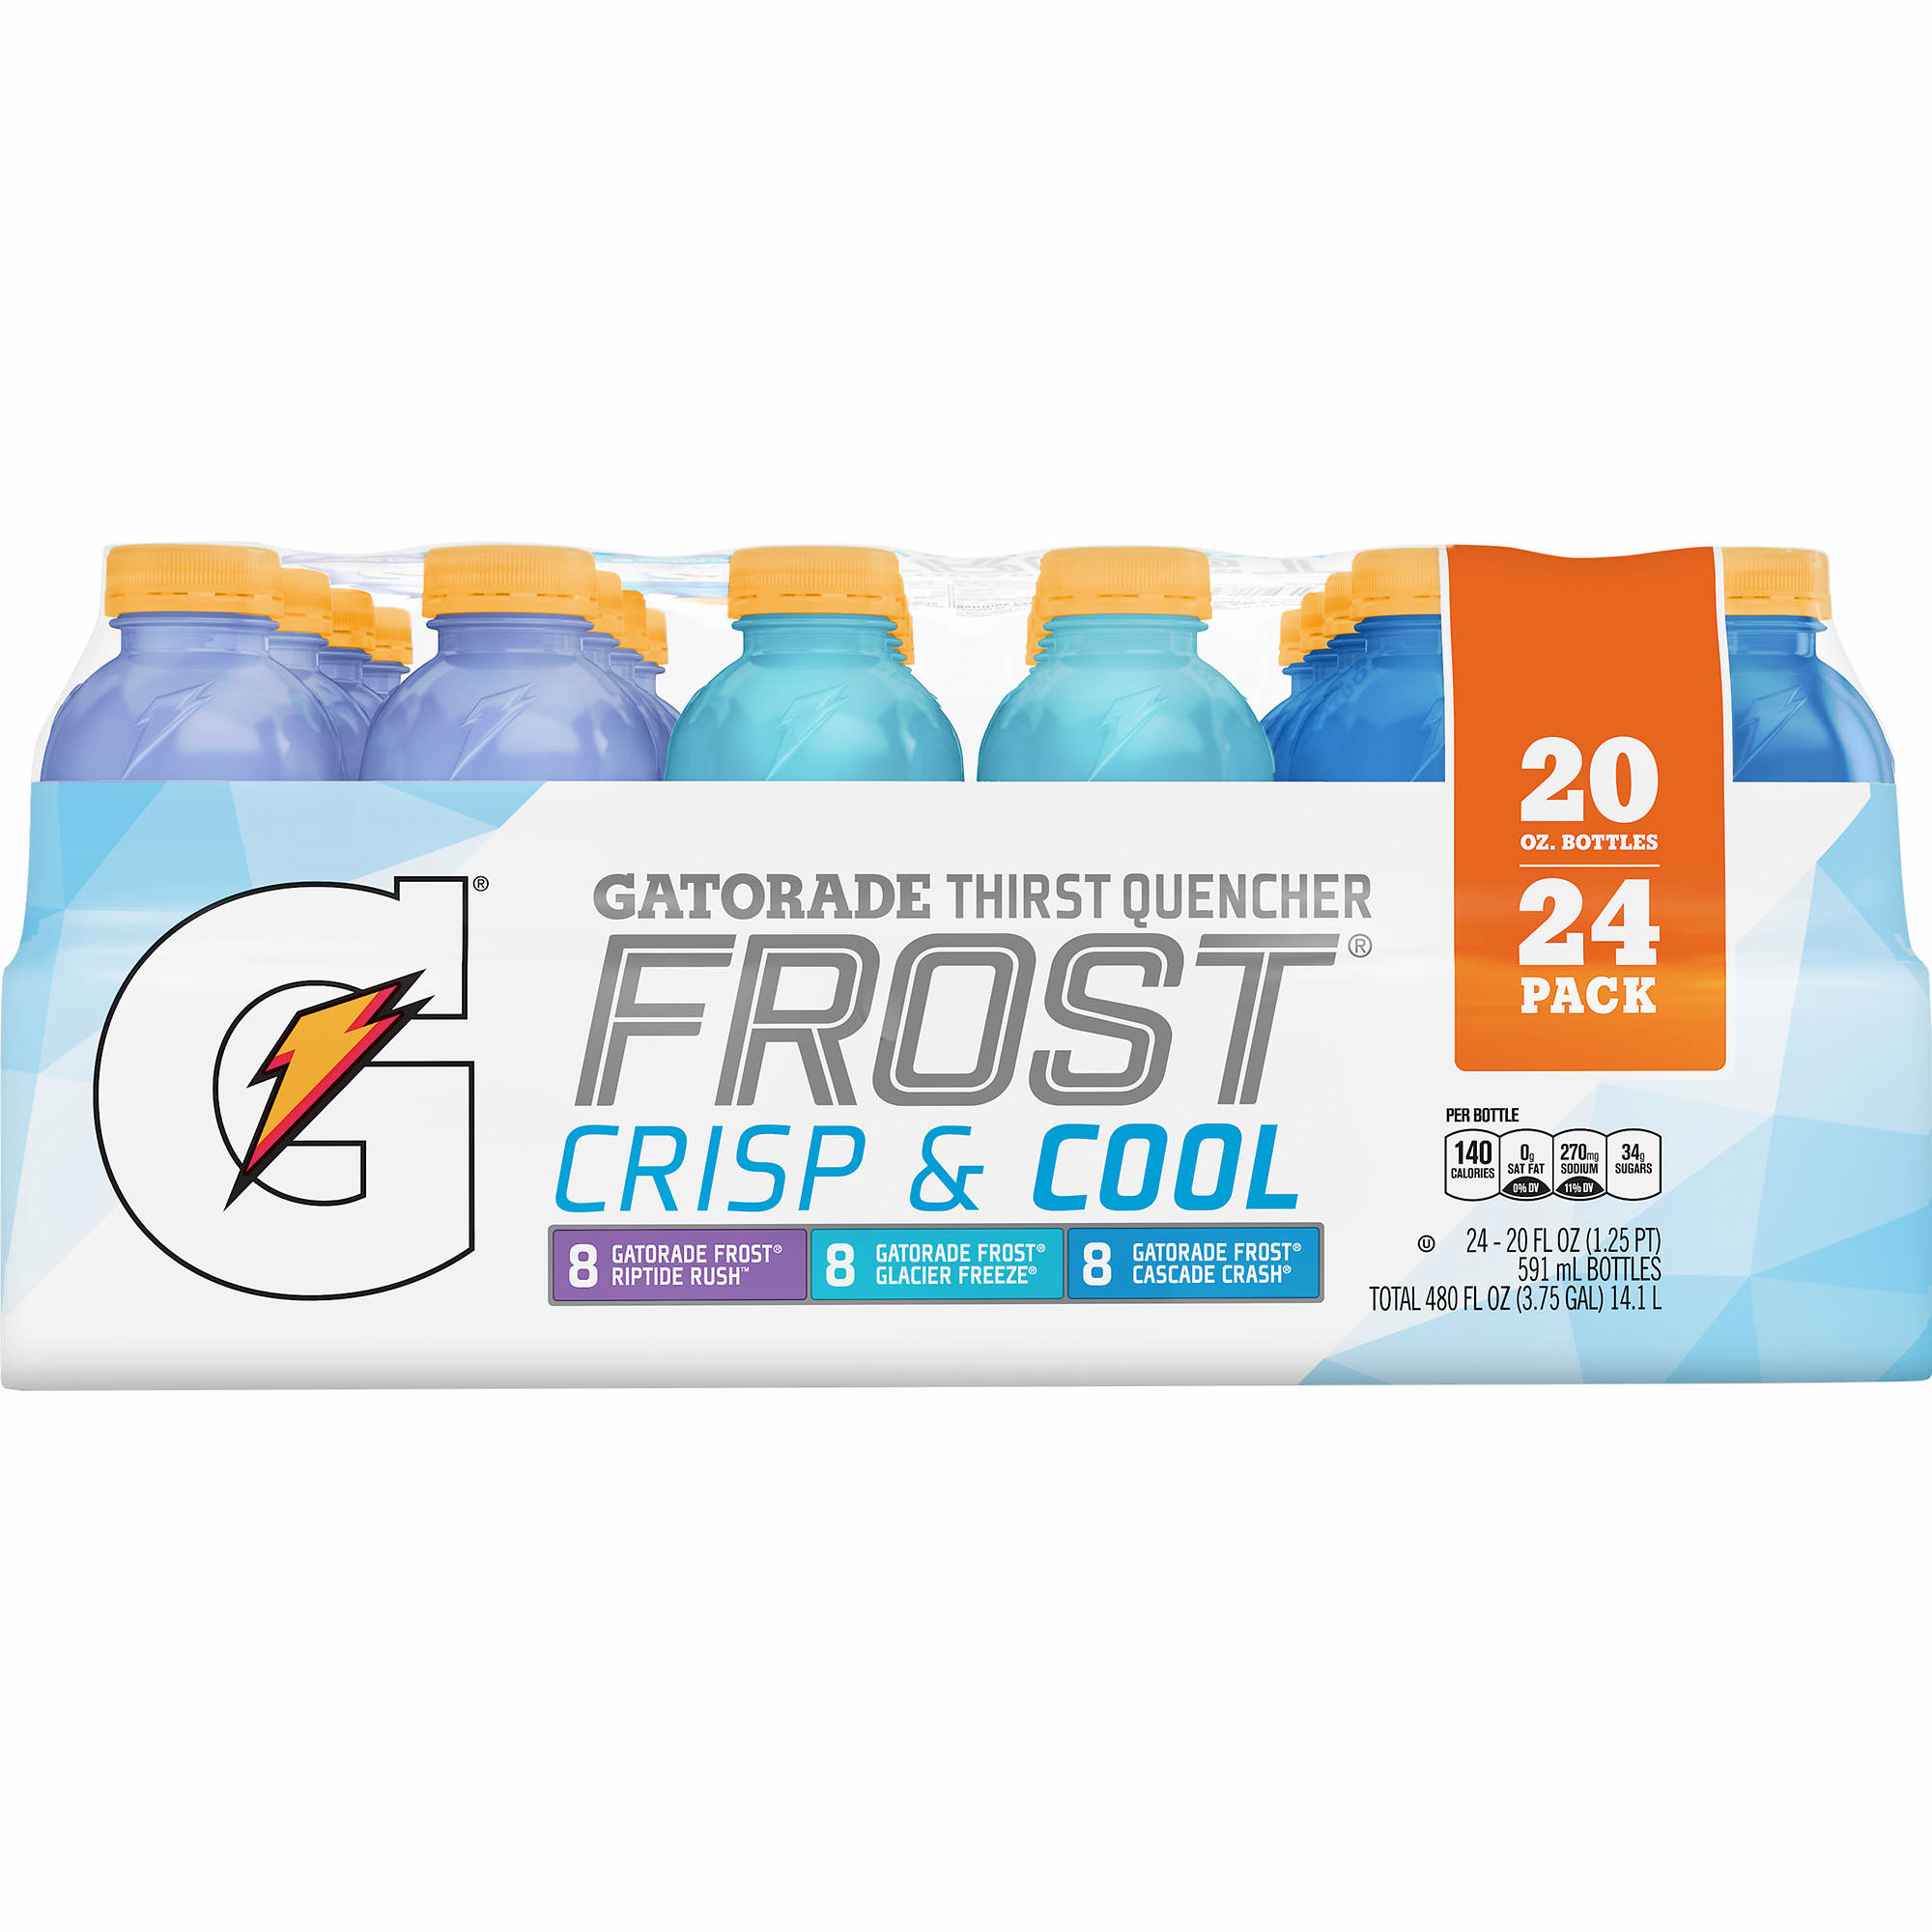 Motivational Quotes For Sports Teams: Gatorade Thirst Quencher Frost Variety Pack, 24 Pk./20 Fl